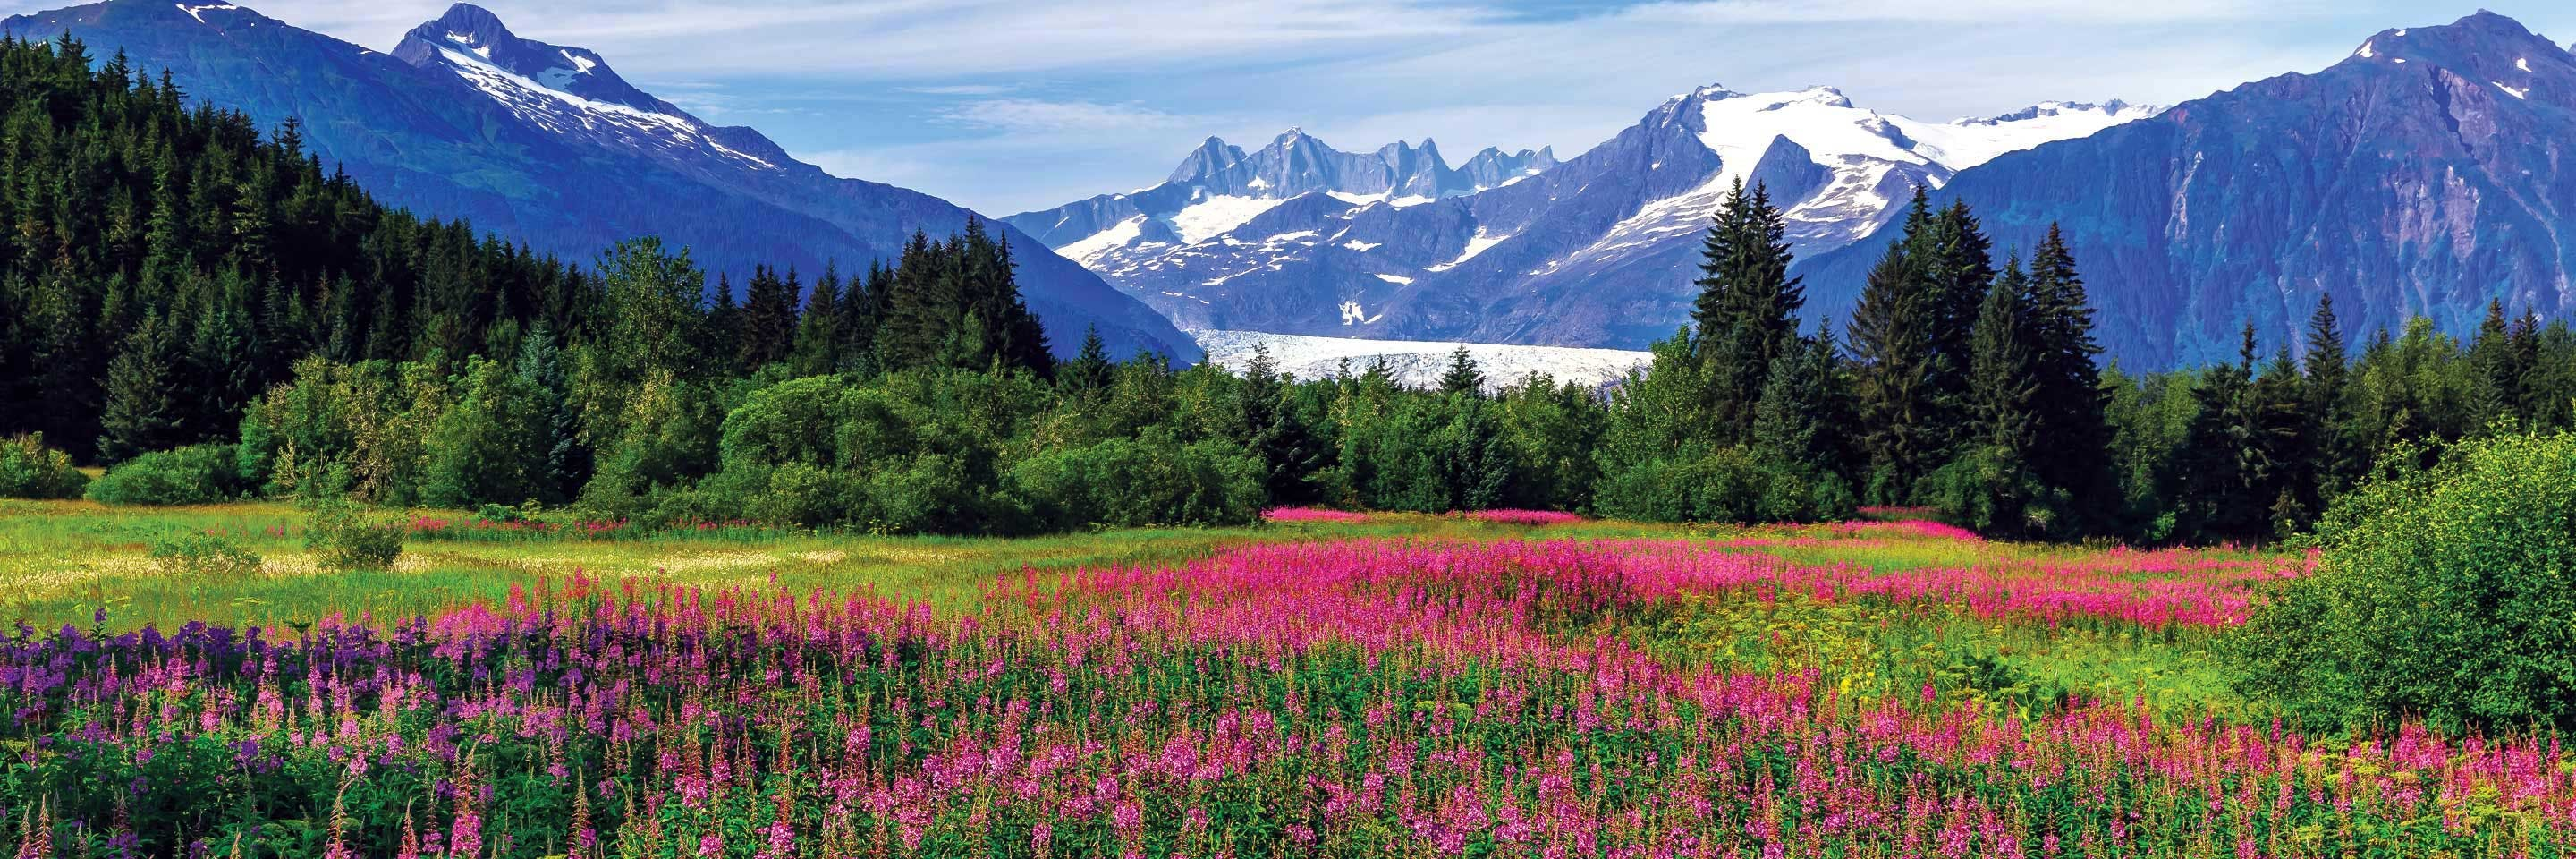 Alaska Small Ship Cruises & Expeditions for Adventure Travel